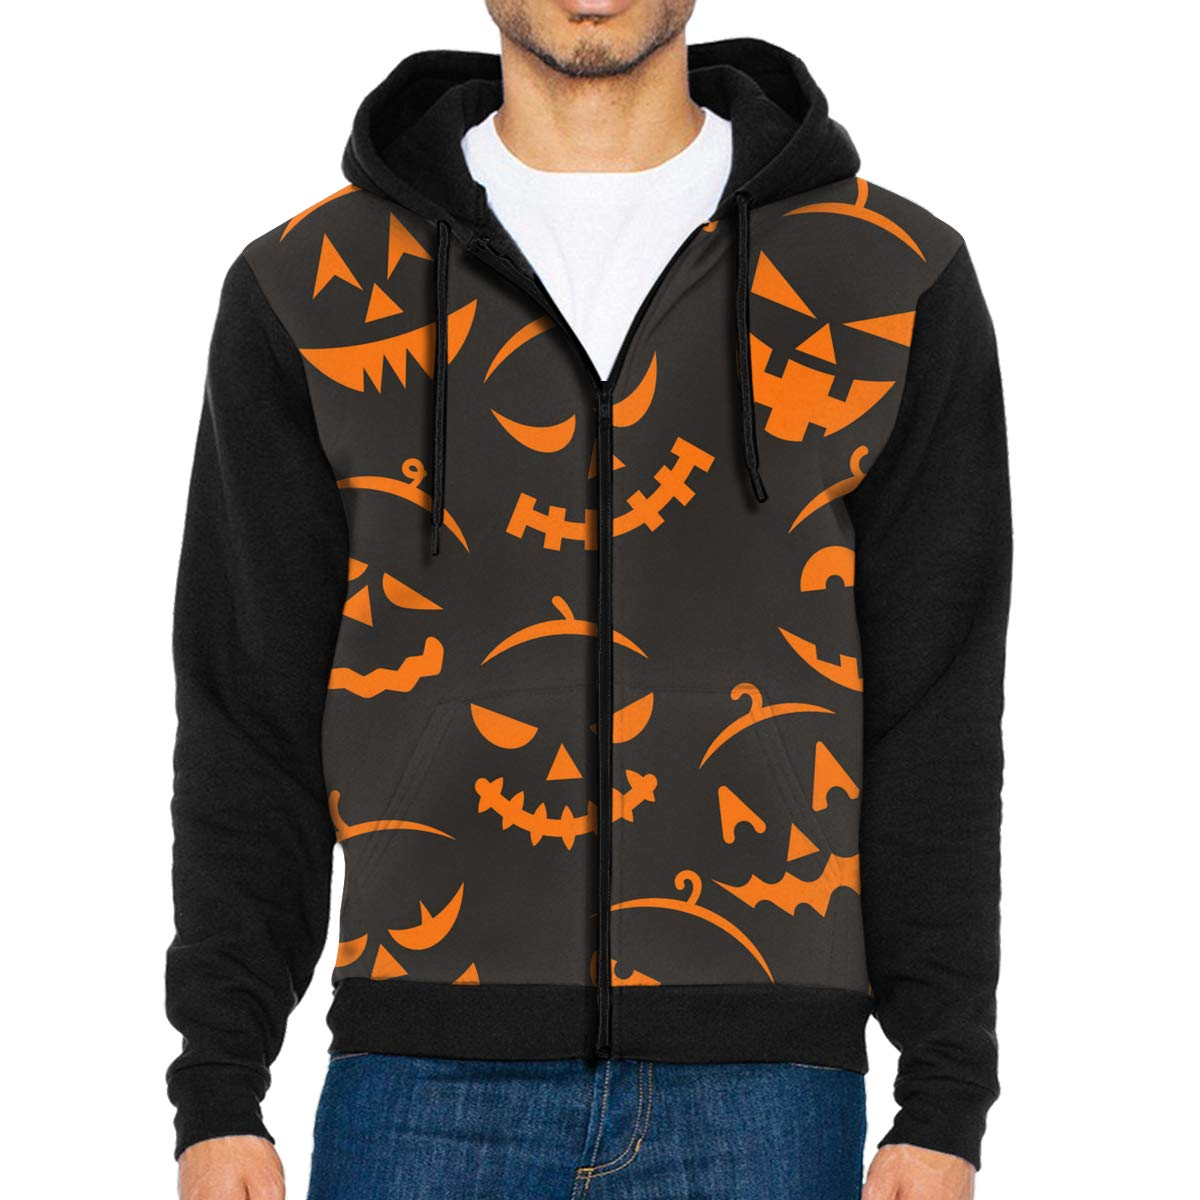 MHBGMYES Scary Halloween Lightweight Mans Jacket with Hood Long Sleeved Zippered Outwear